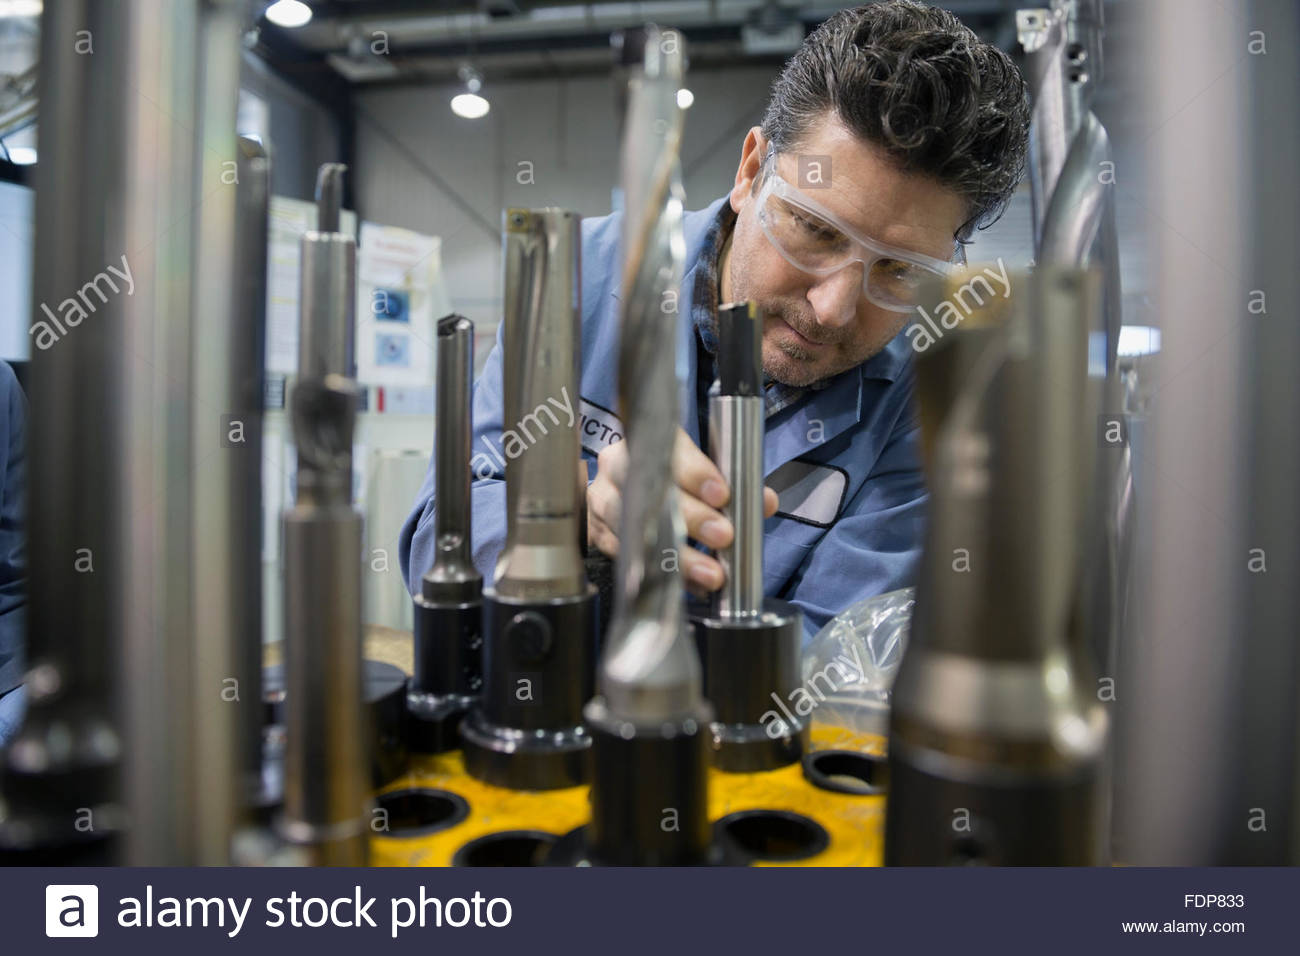 Worker examining machinery in factory - Stock Image